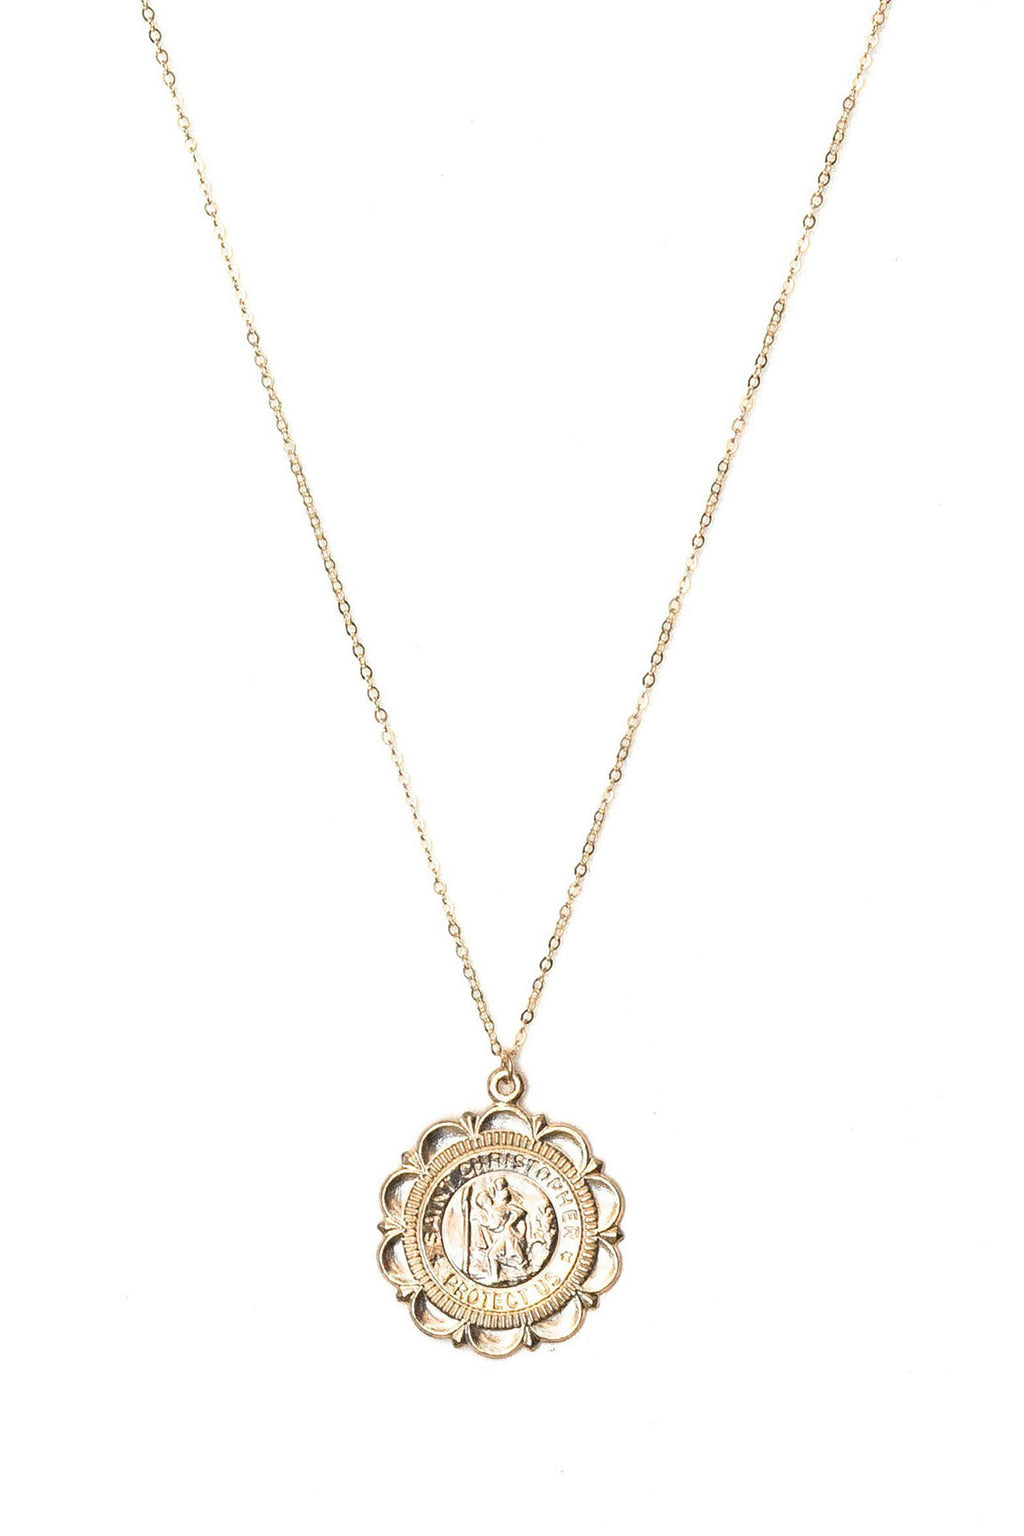 St. Christopher Necklace - Long